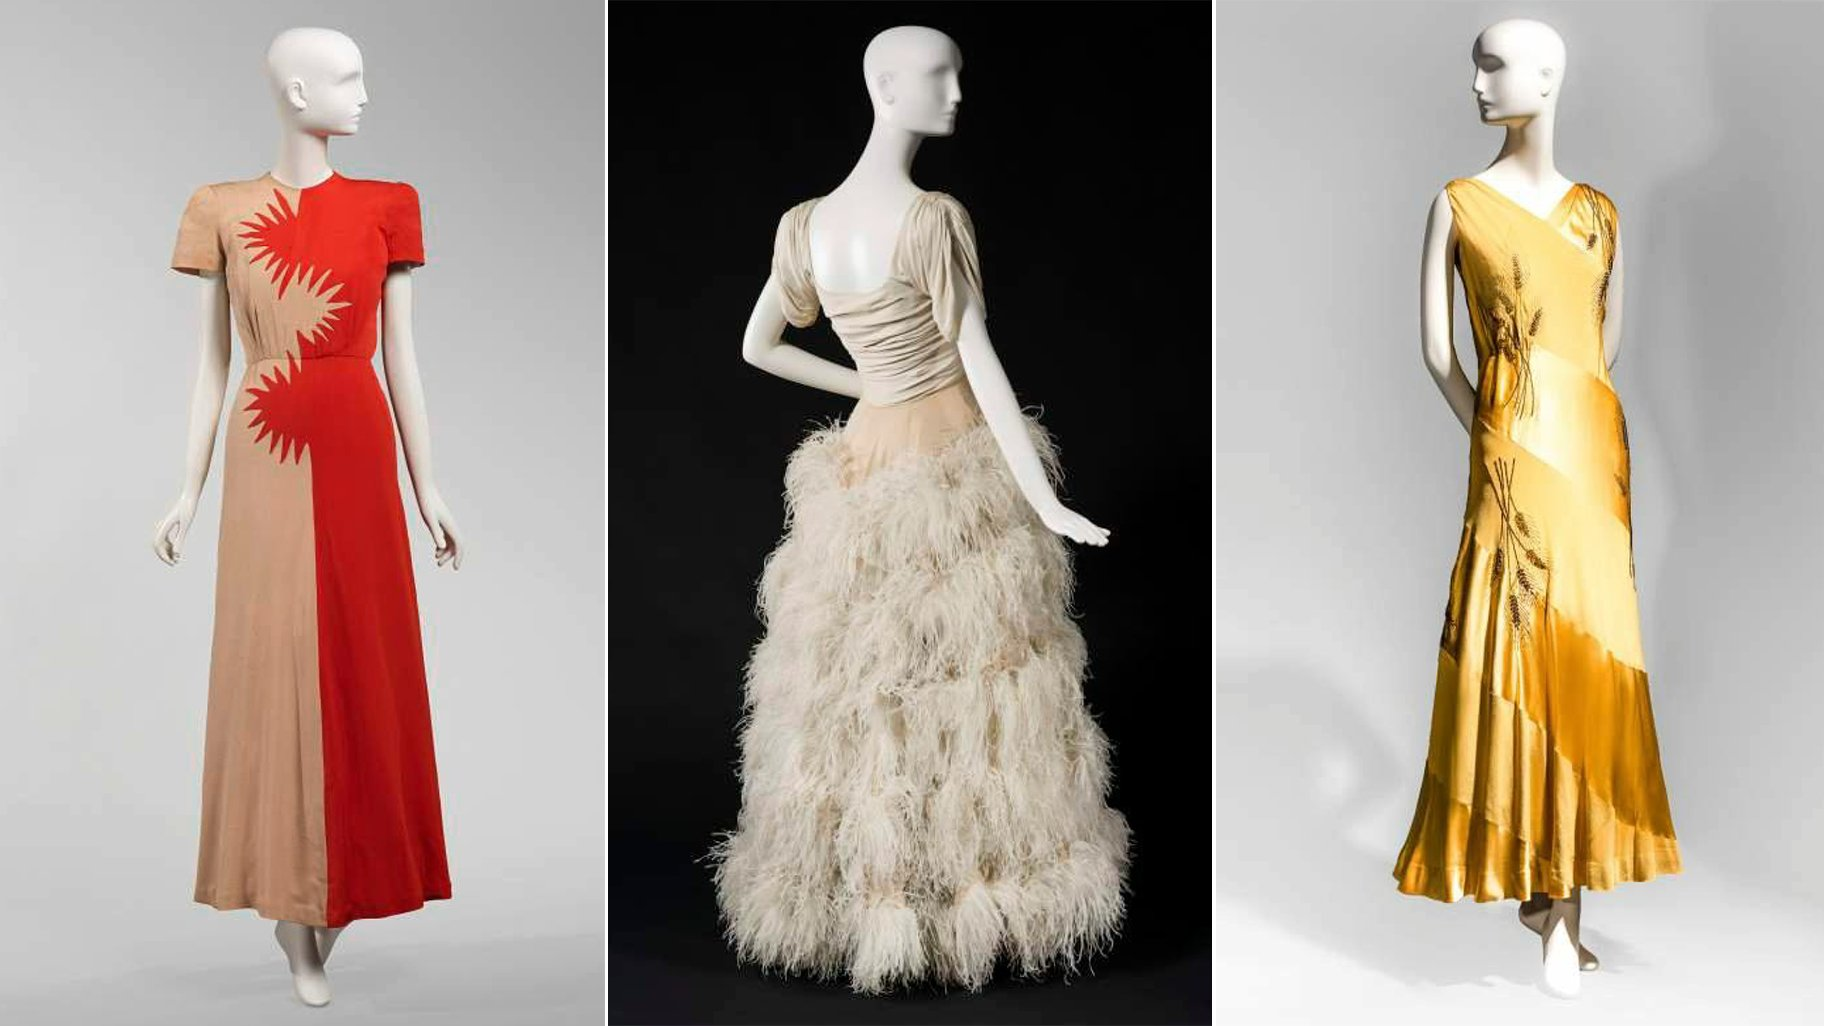 Tracing American Fashion from 'Silver Screen to Mainstream'